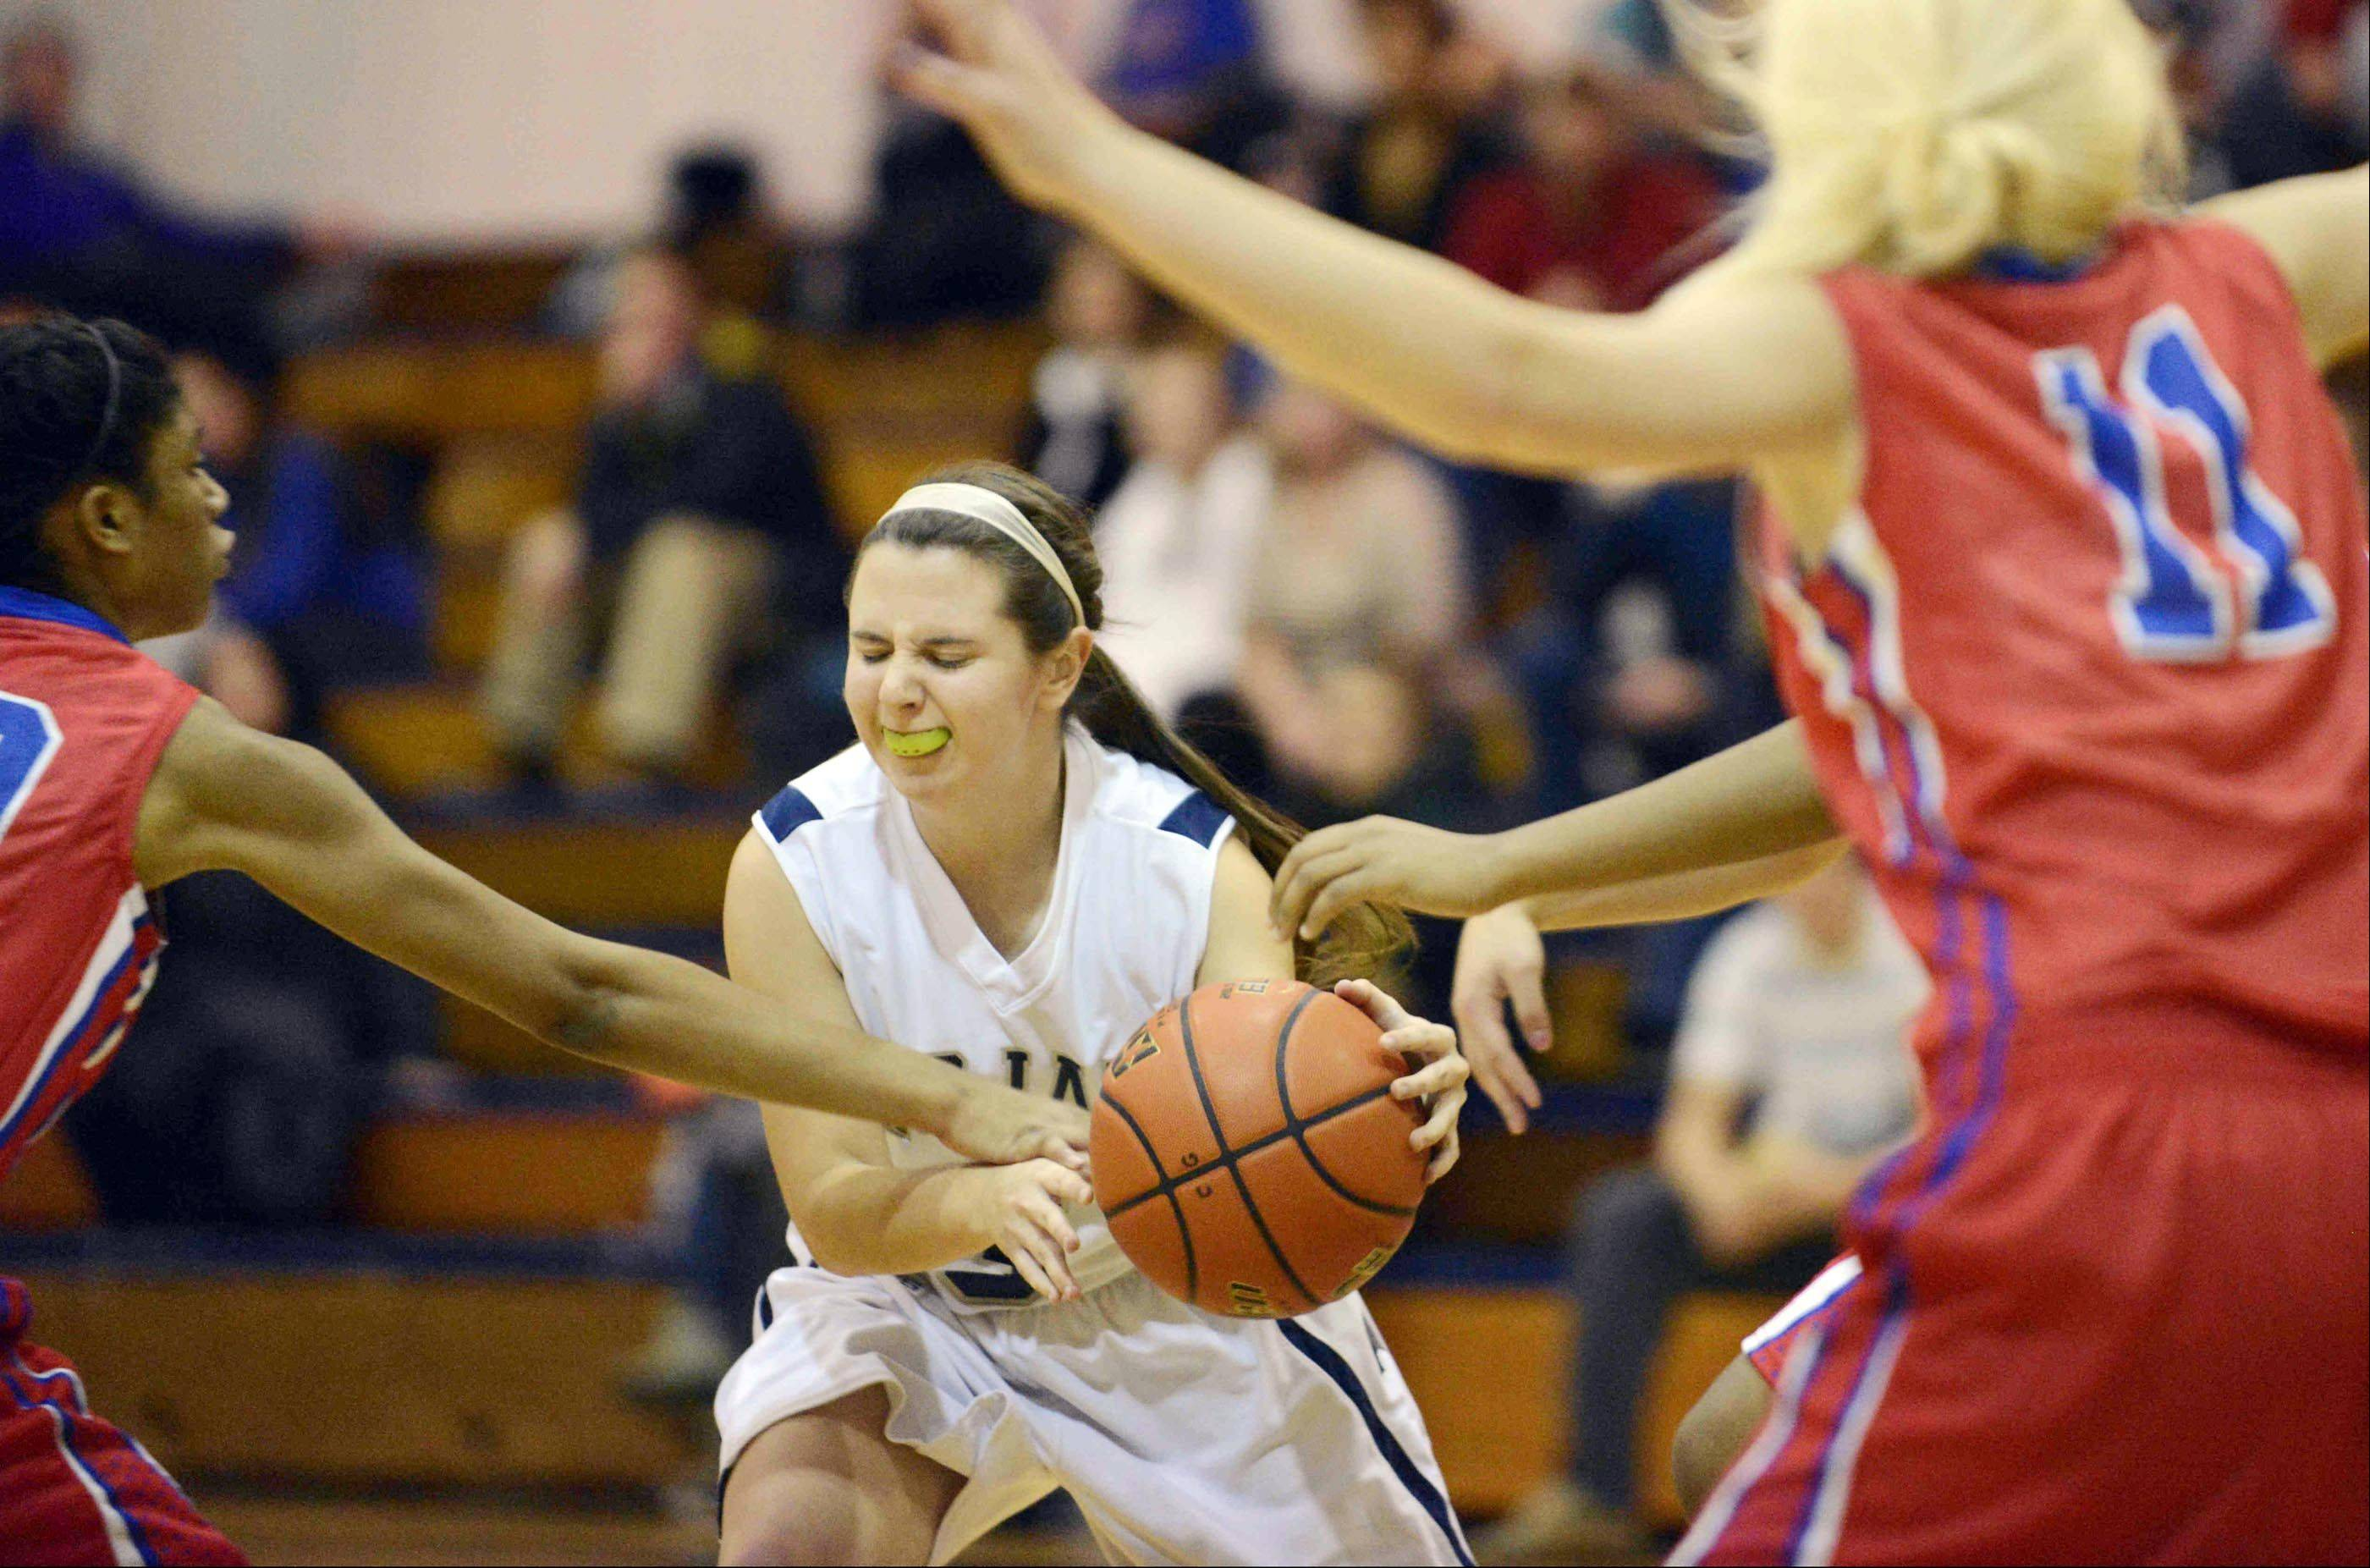 Images from the Dundee-Crown vs. Cary-Grove girls basketball game Tuesday, December 3, 2013.